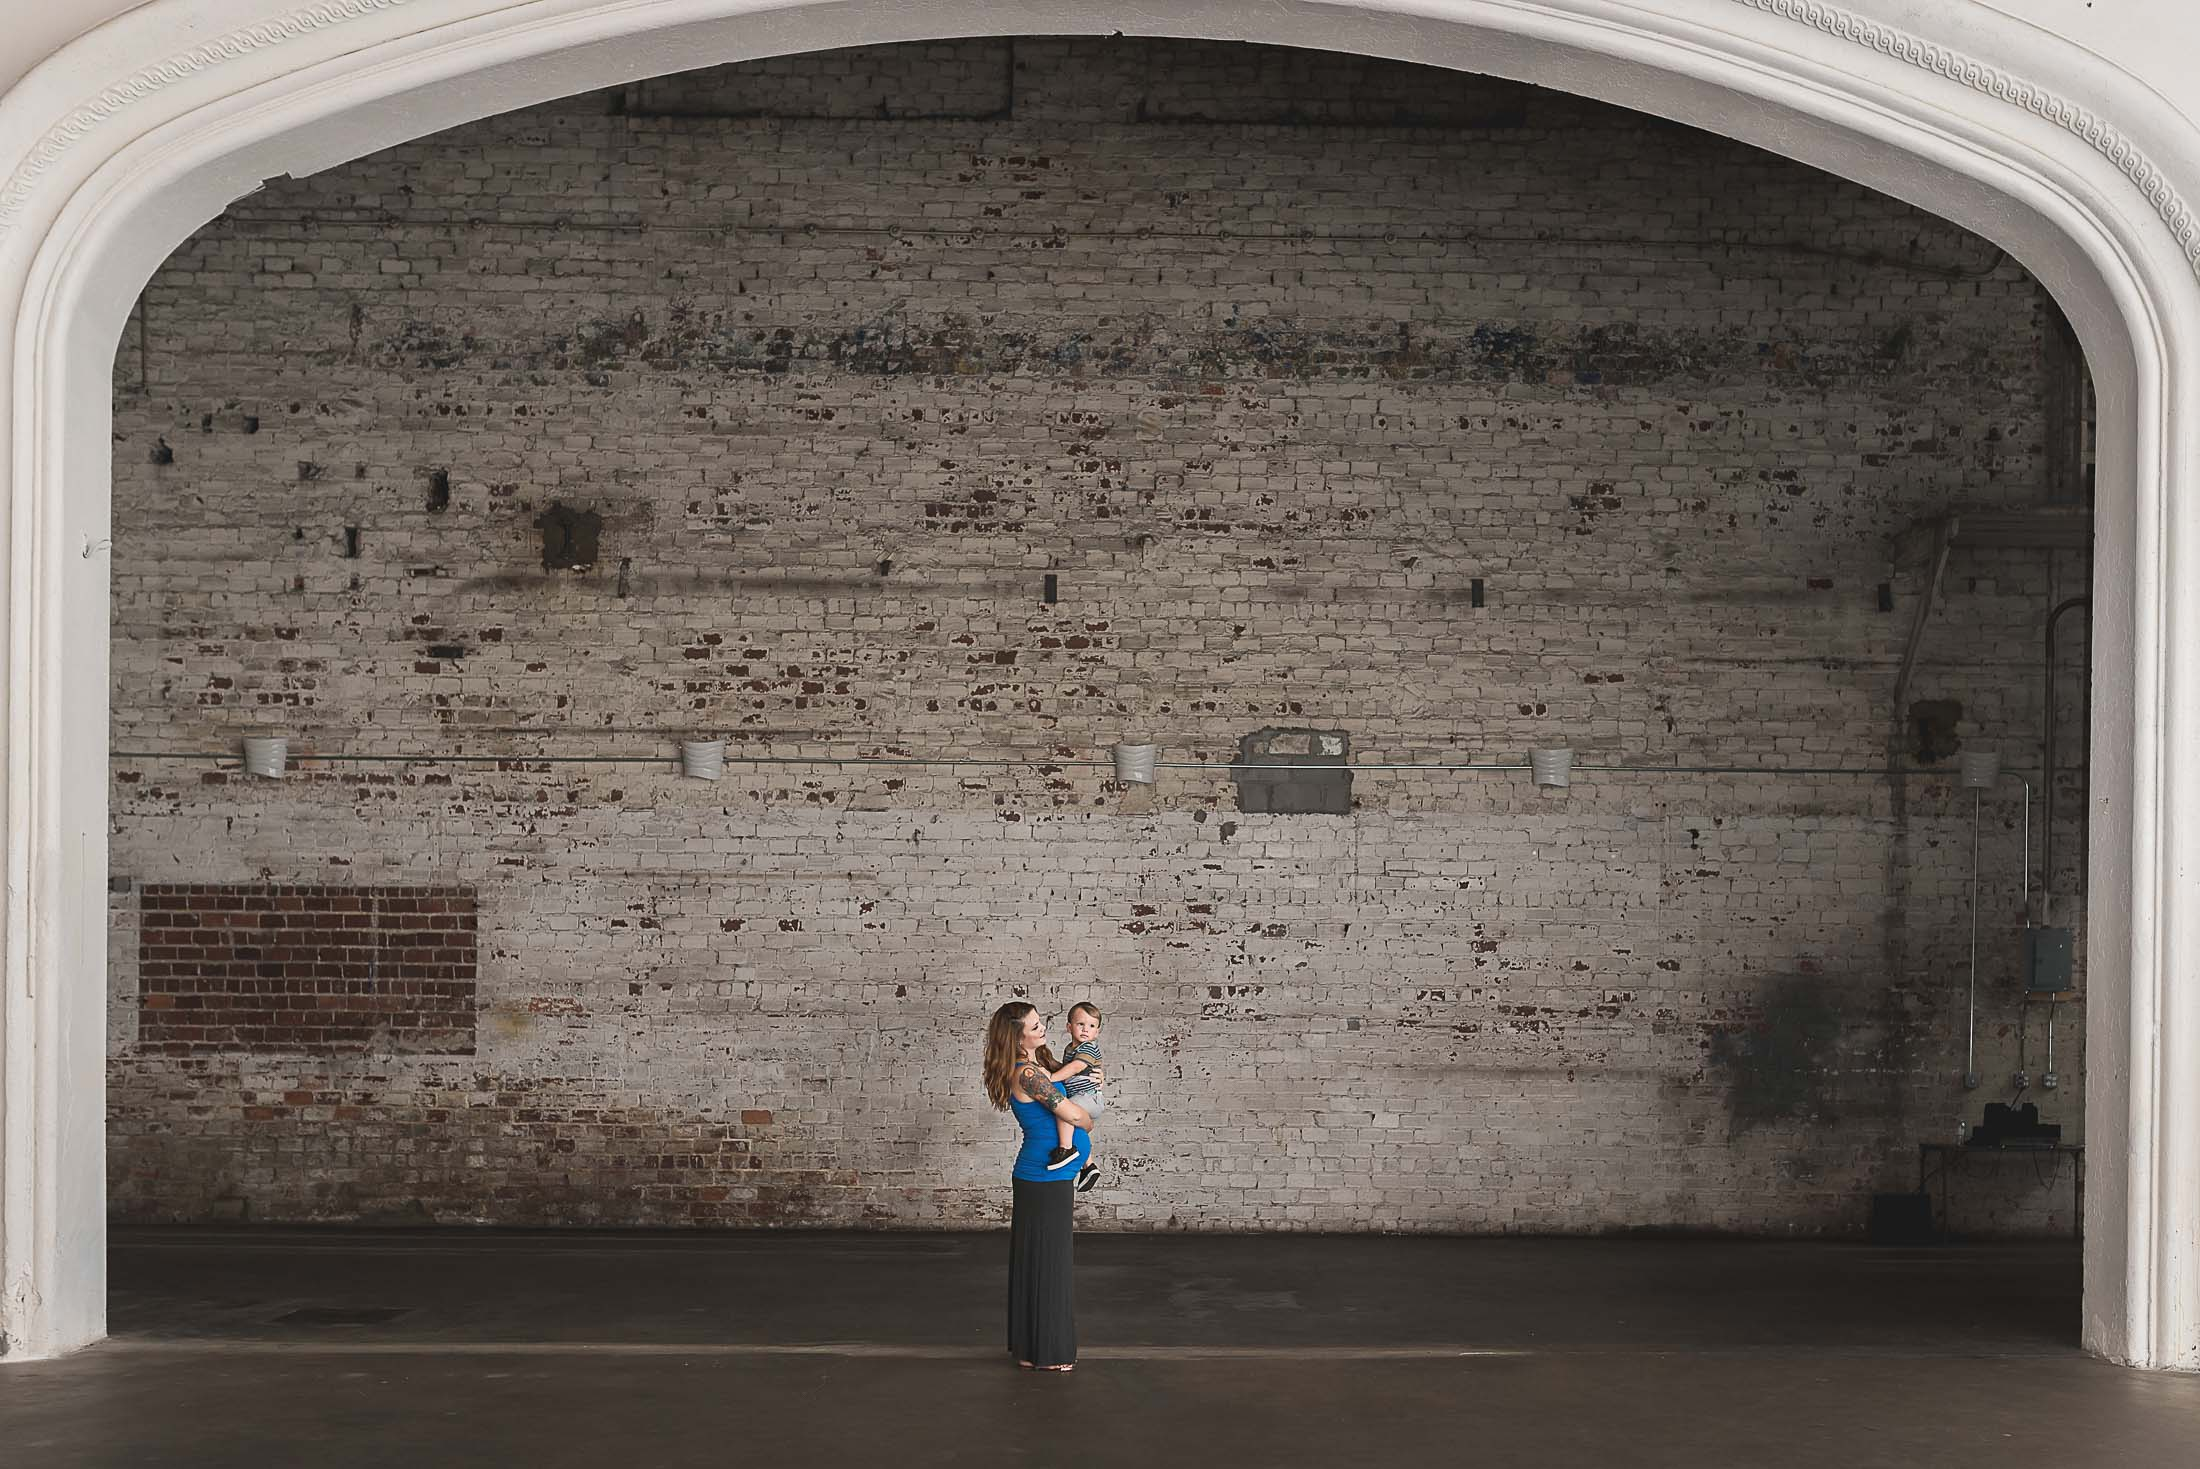 A pregnant woman in front of an exposed brick wall in the Rialto Theatre